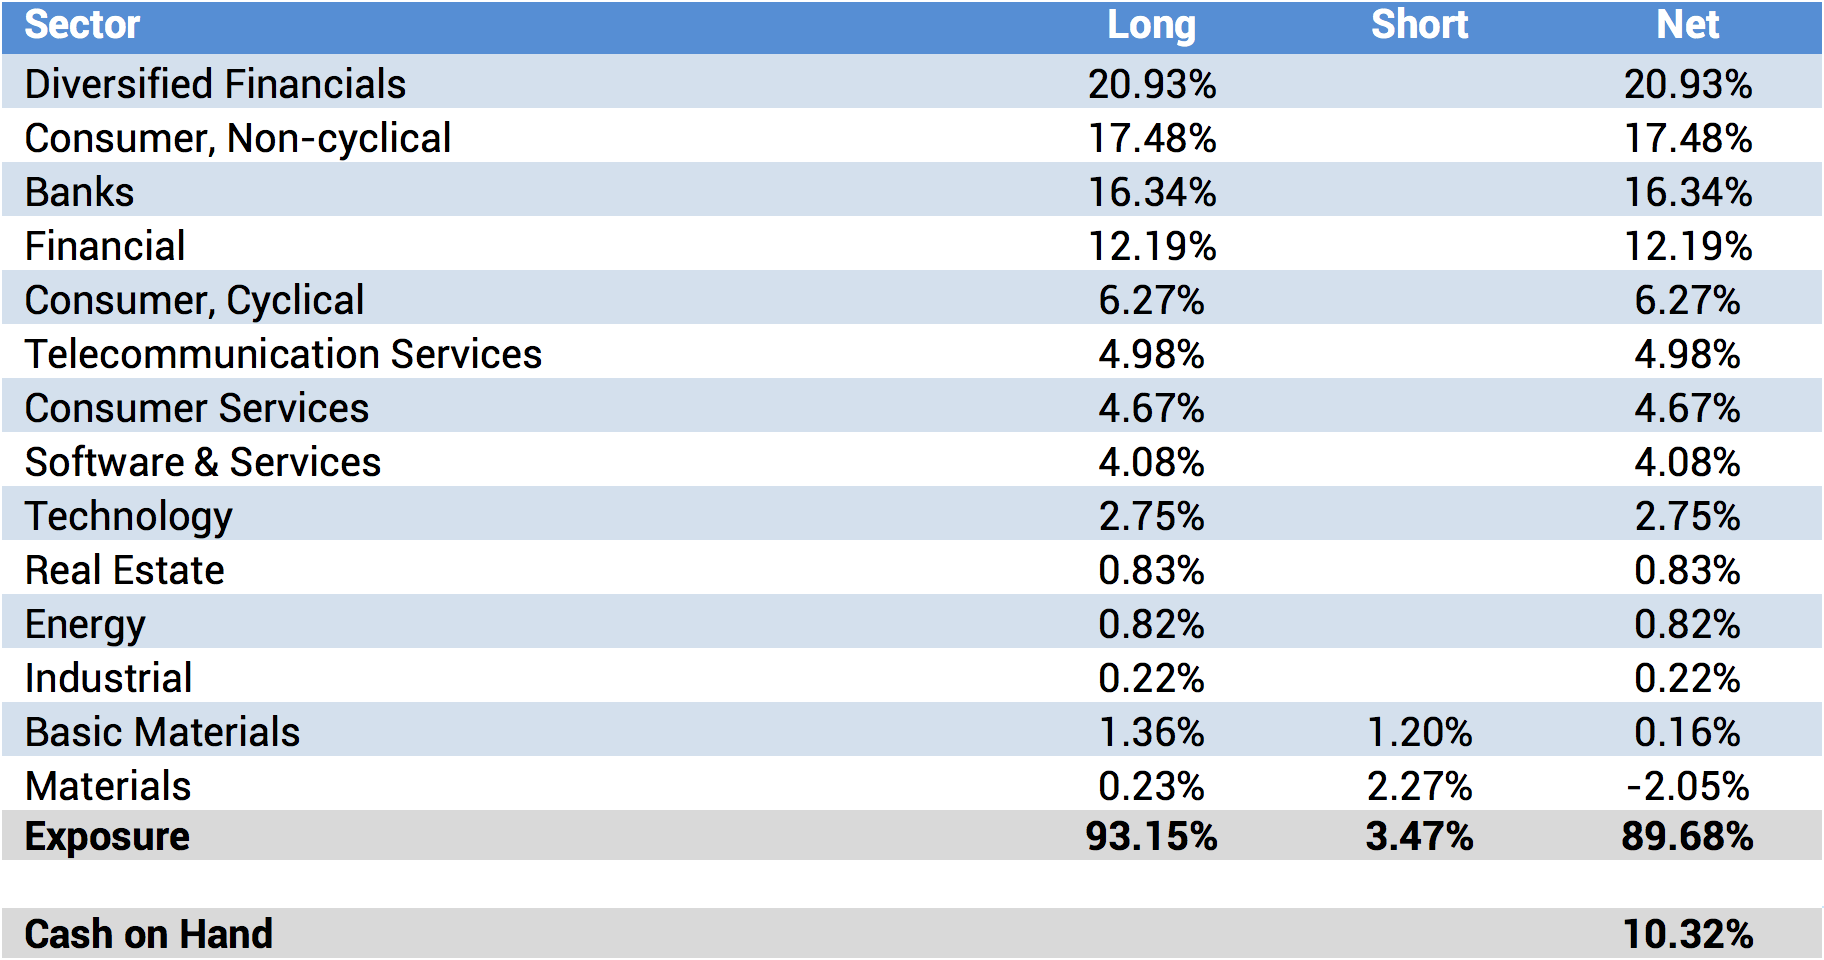 Portfolio Sector Analysis